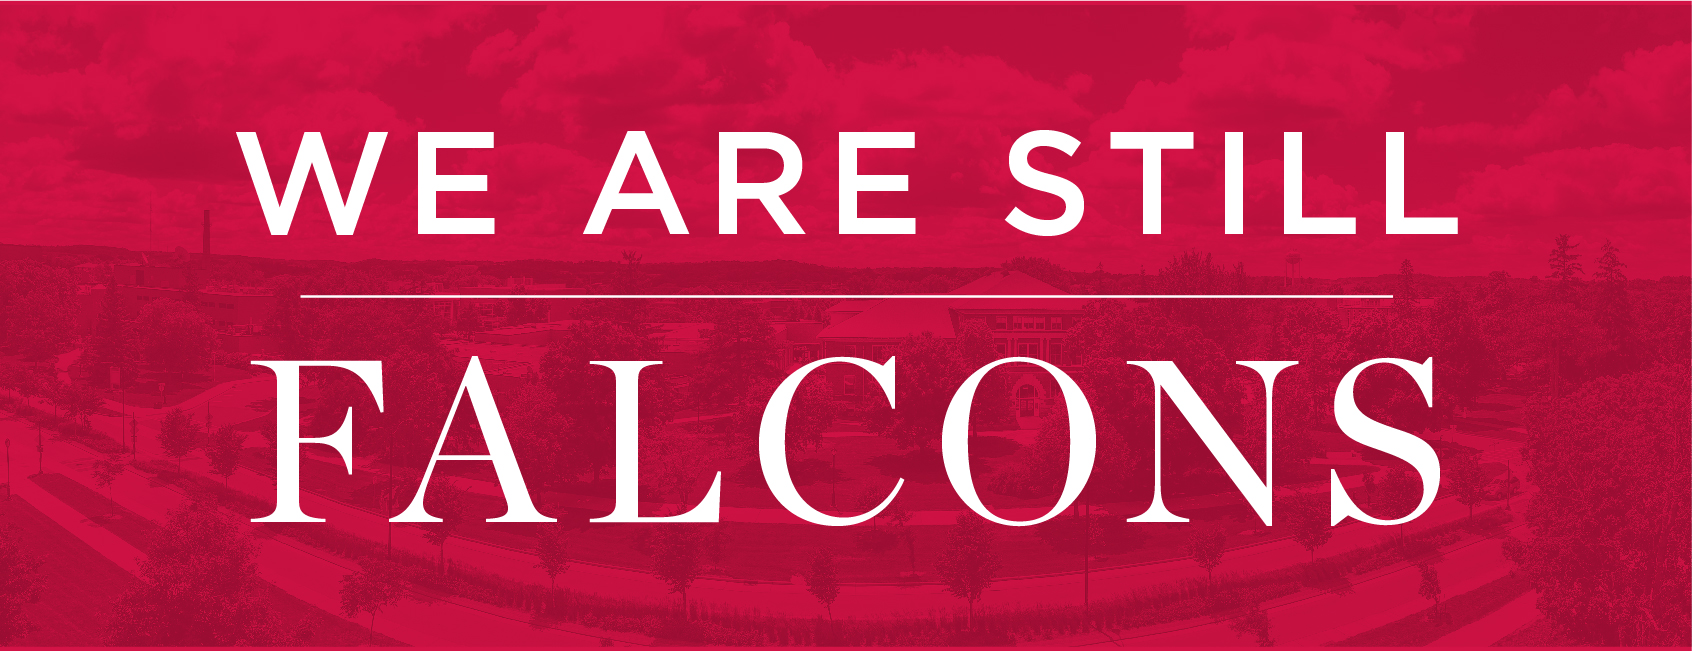 Still Falcons_Facebook_Header_812x312px-02